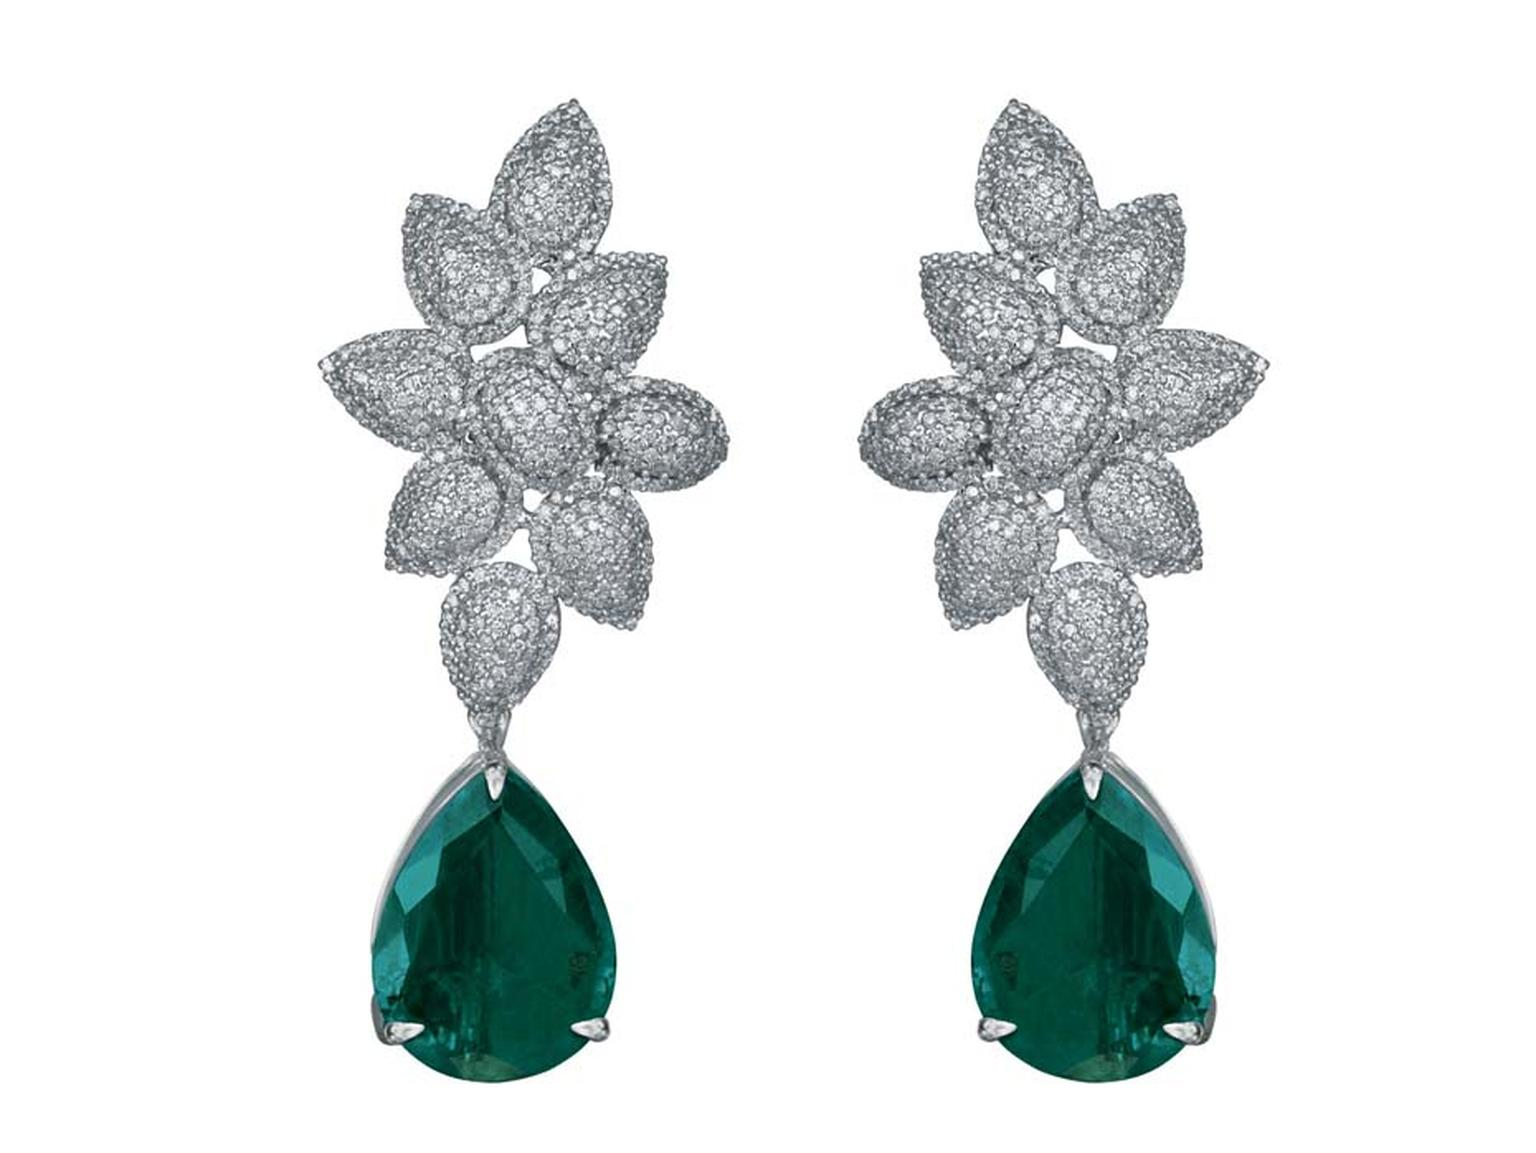 MINAWALA Festival of Emeralds collection earrings in white gold with diamonds and emeralds